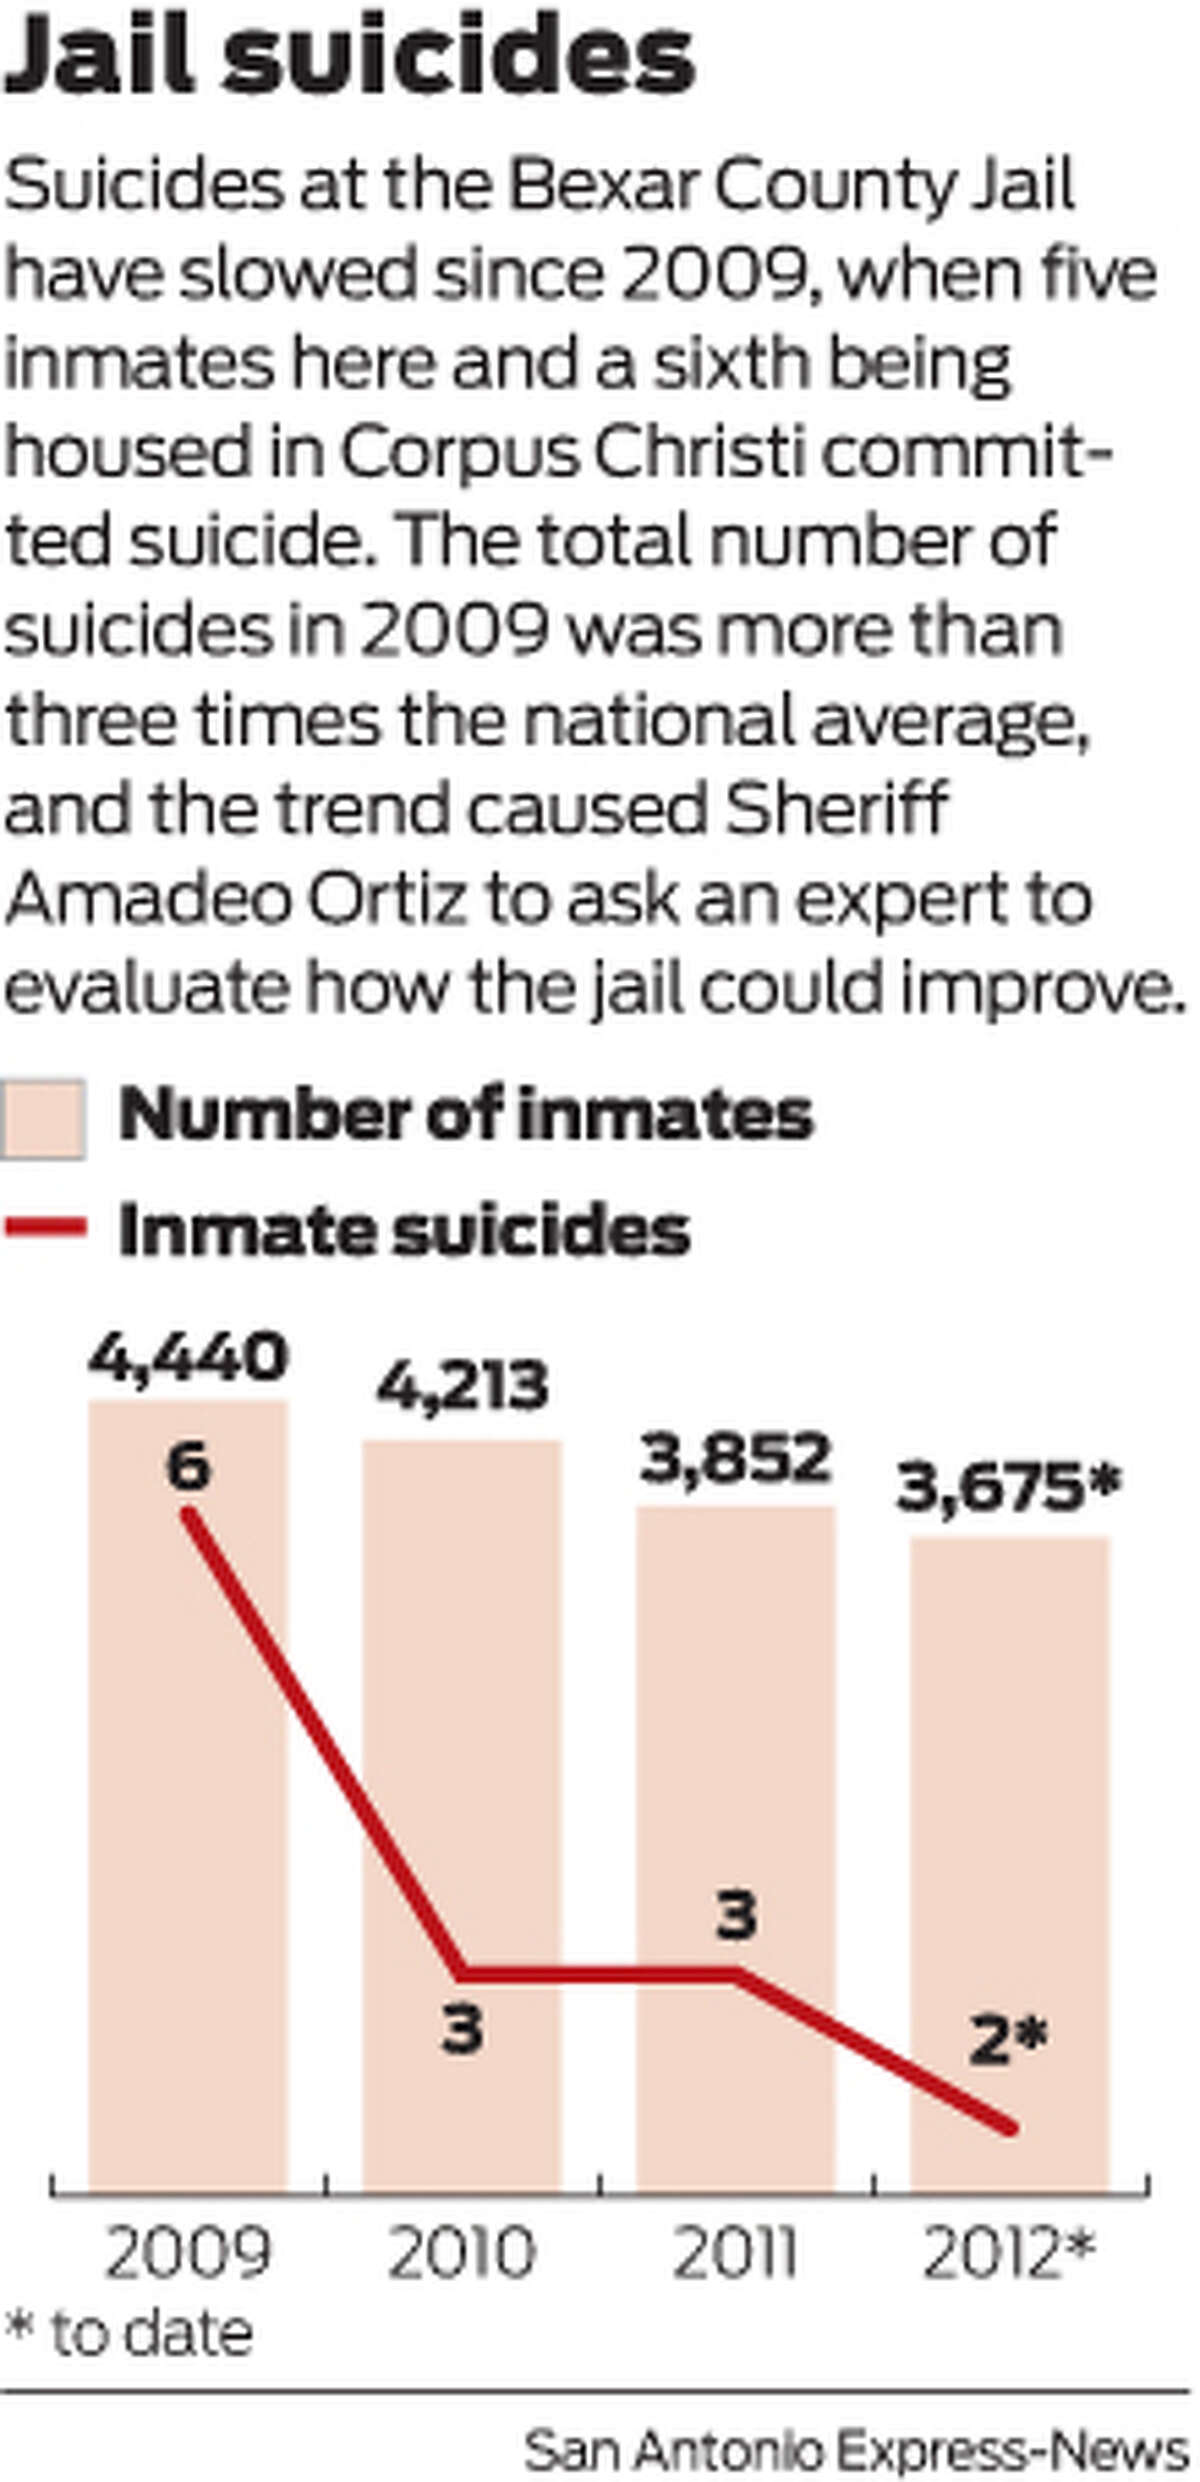 Suicides at the Bexar County Jail have slowed since 2009, when five inmates here and a sixth being housed in Corpus Christi committed suicide. The total number of suicides in 2009 was more than three times the national average, and the trend caused Sheriff Amadeo Ortiz to ask an expert to evaluate how the jail could improve.